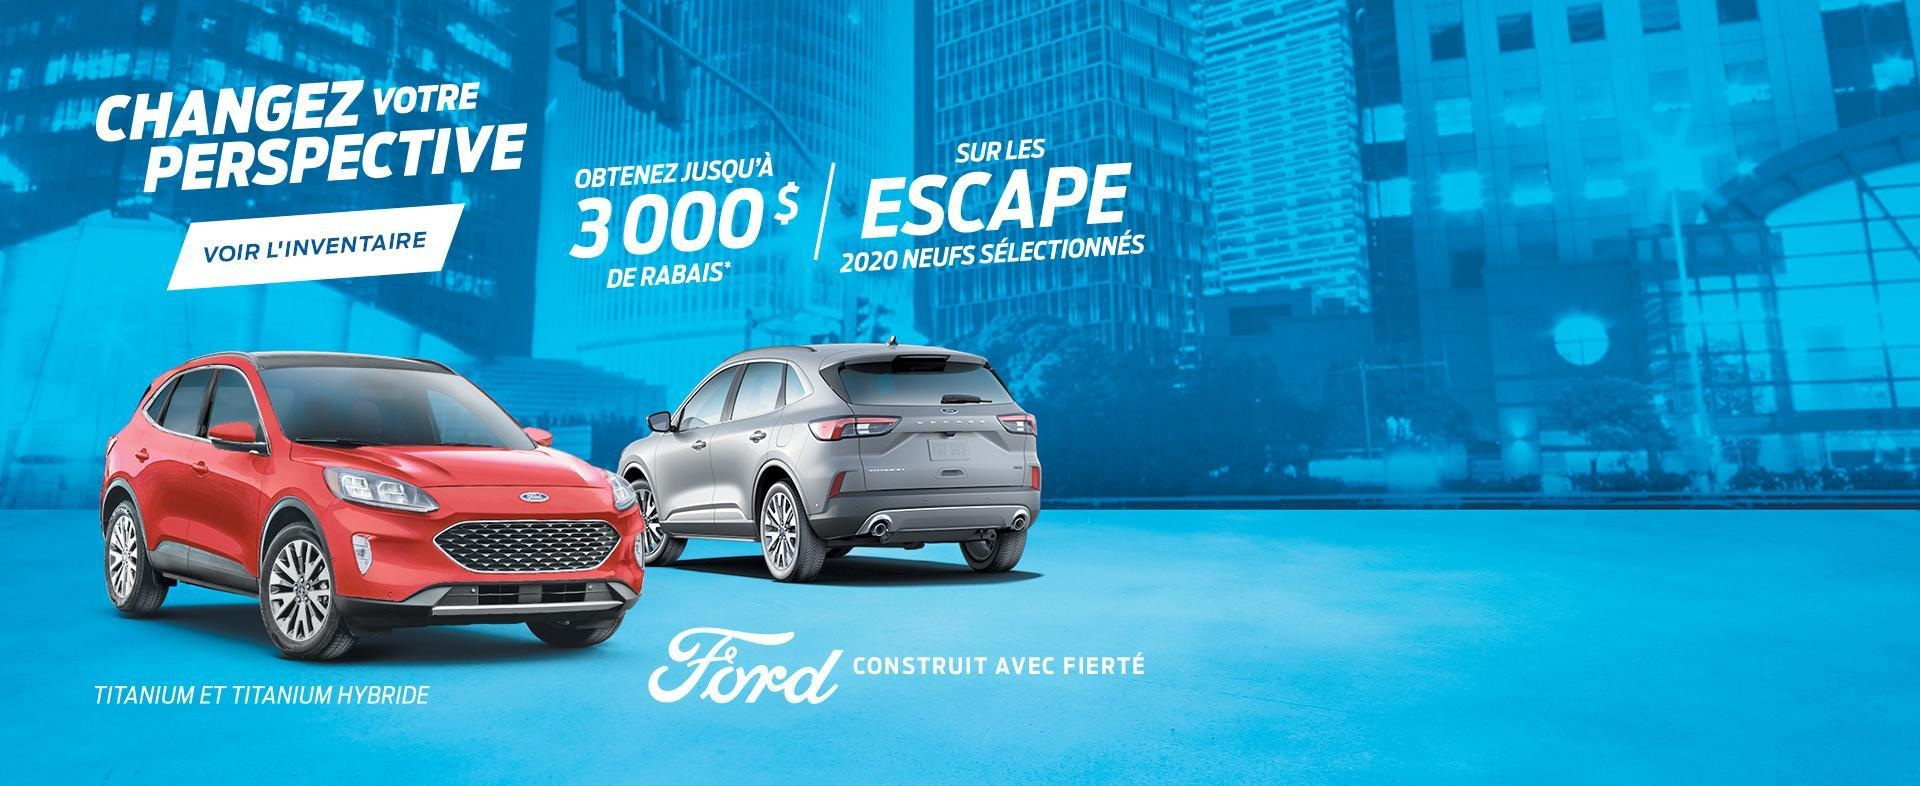 Changez Votre Perspective | Ford Escape | Ford of Canada